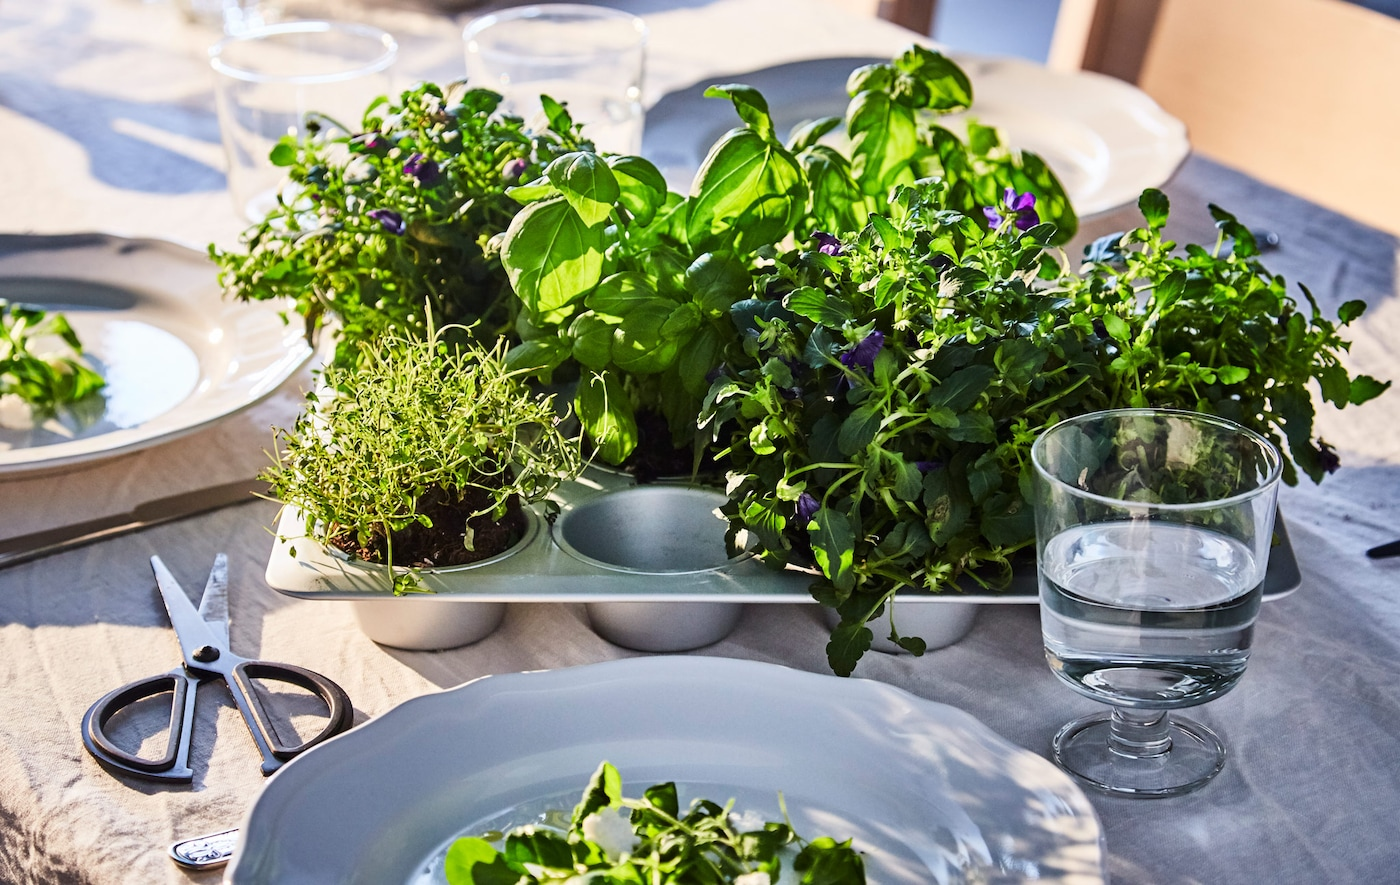 Different fresh herbs are planted in a muffin tin that sits at a set dining table.